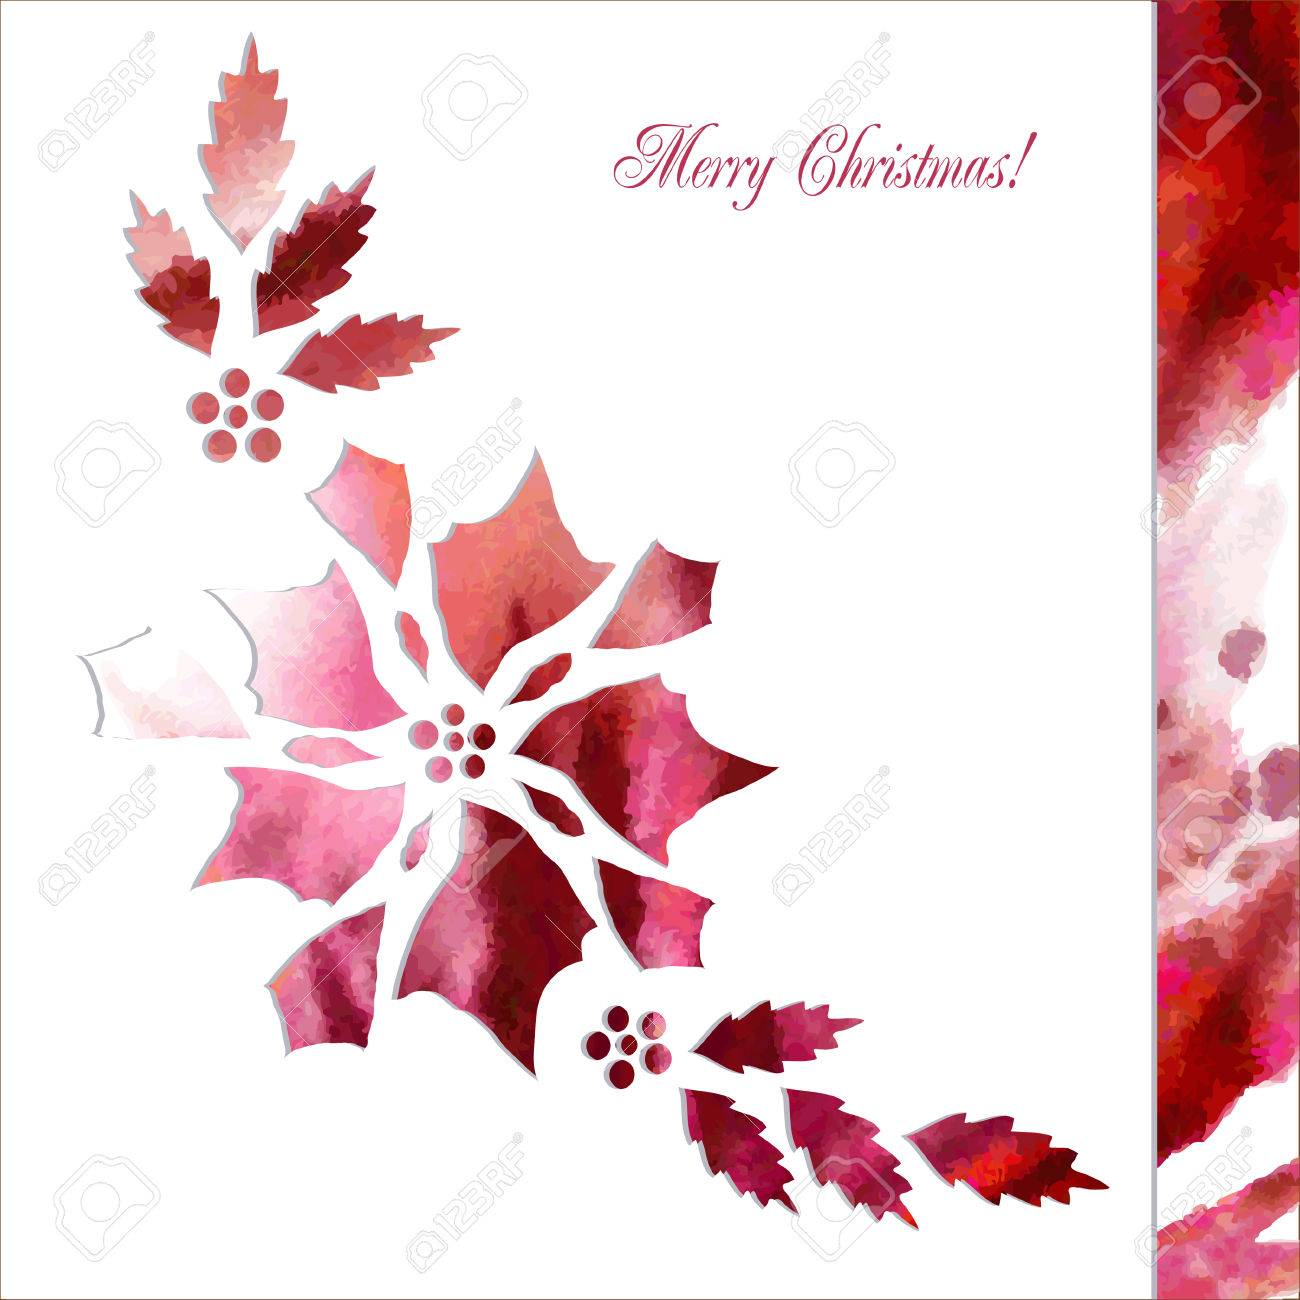 Background With Paper Poinsettia Flowers Vector Watercolor